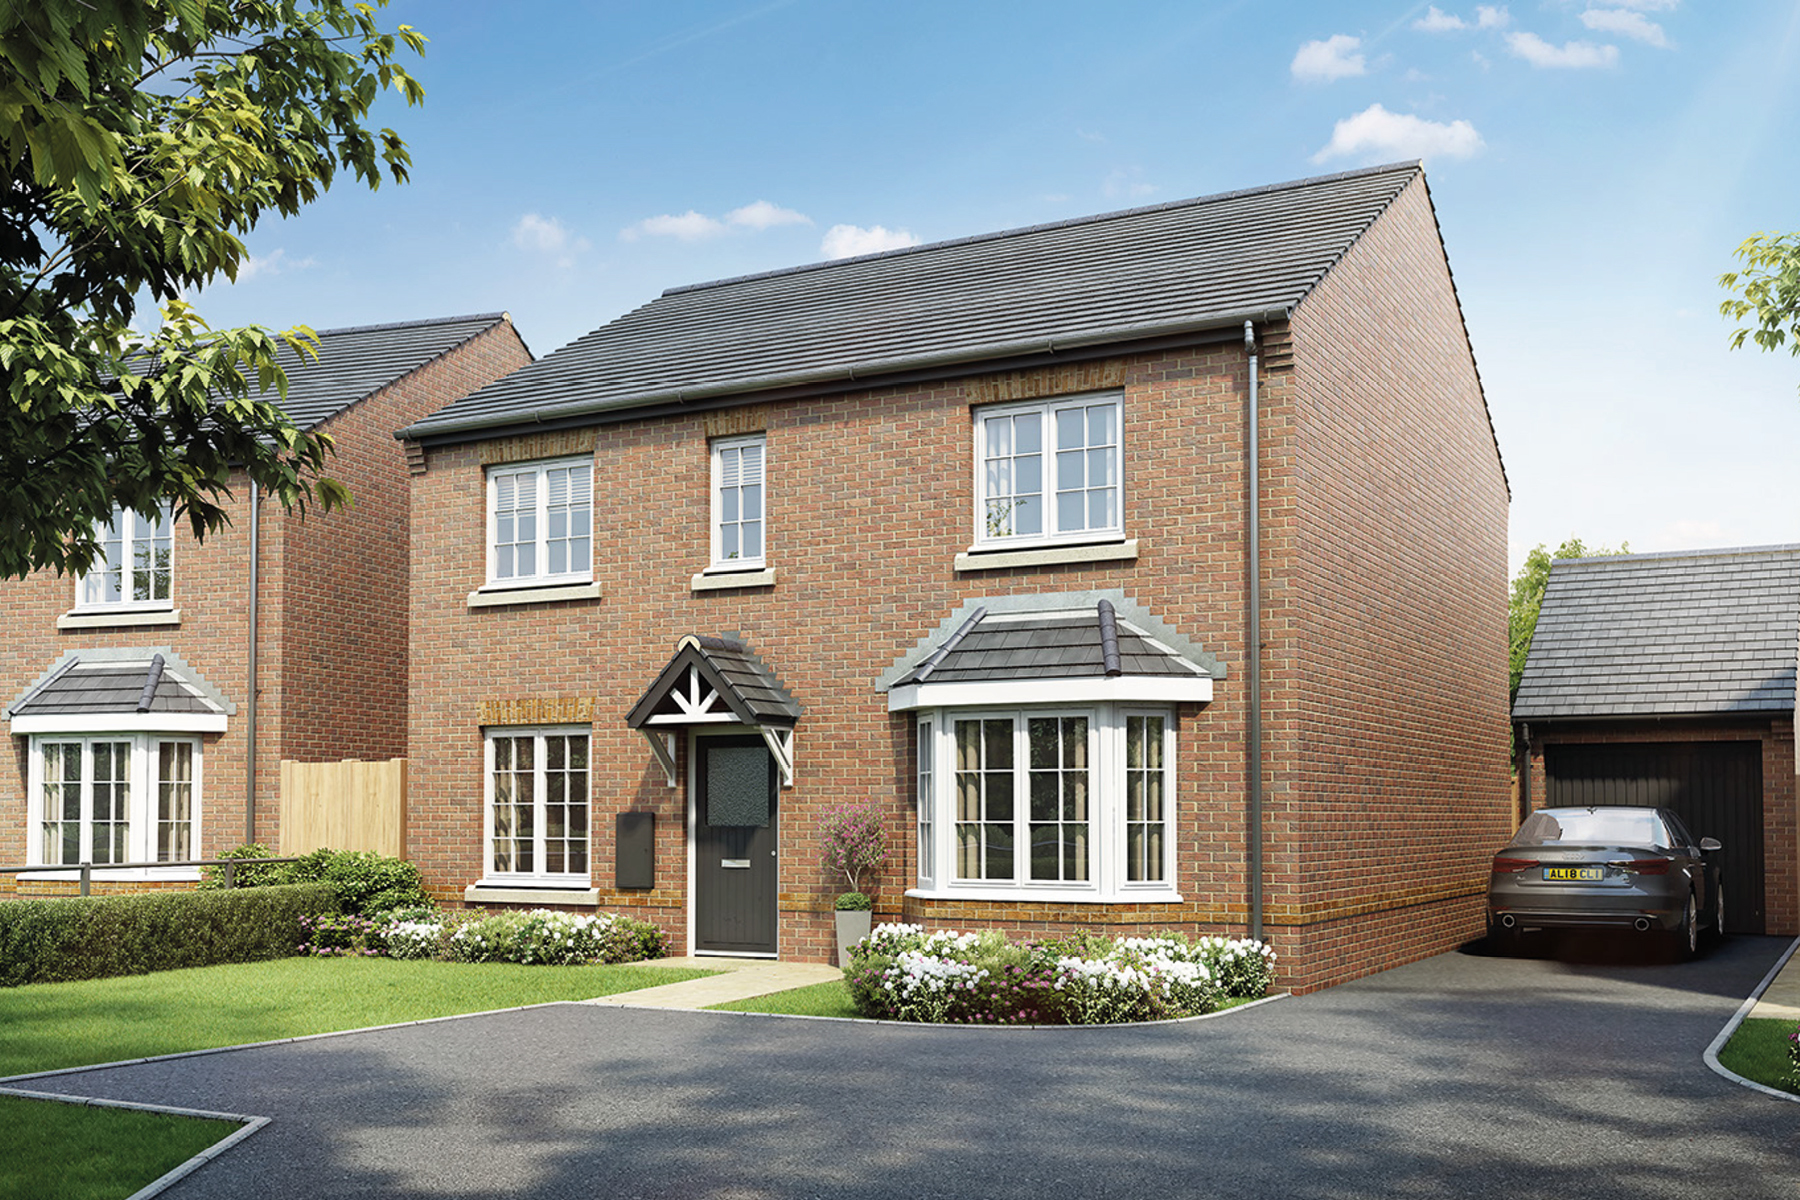 New Homes In Rossington Taylor Wimpey